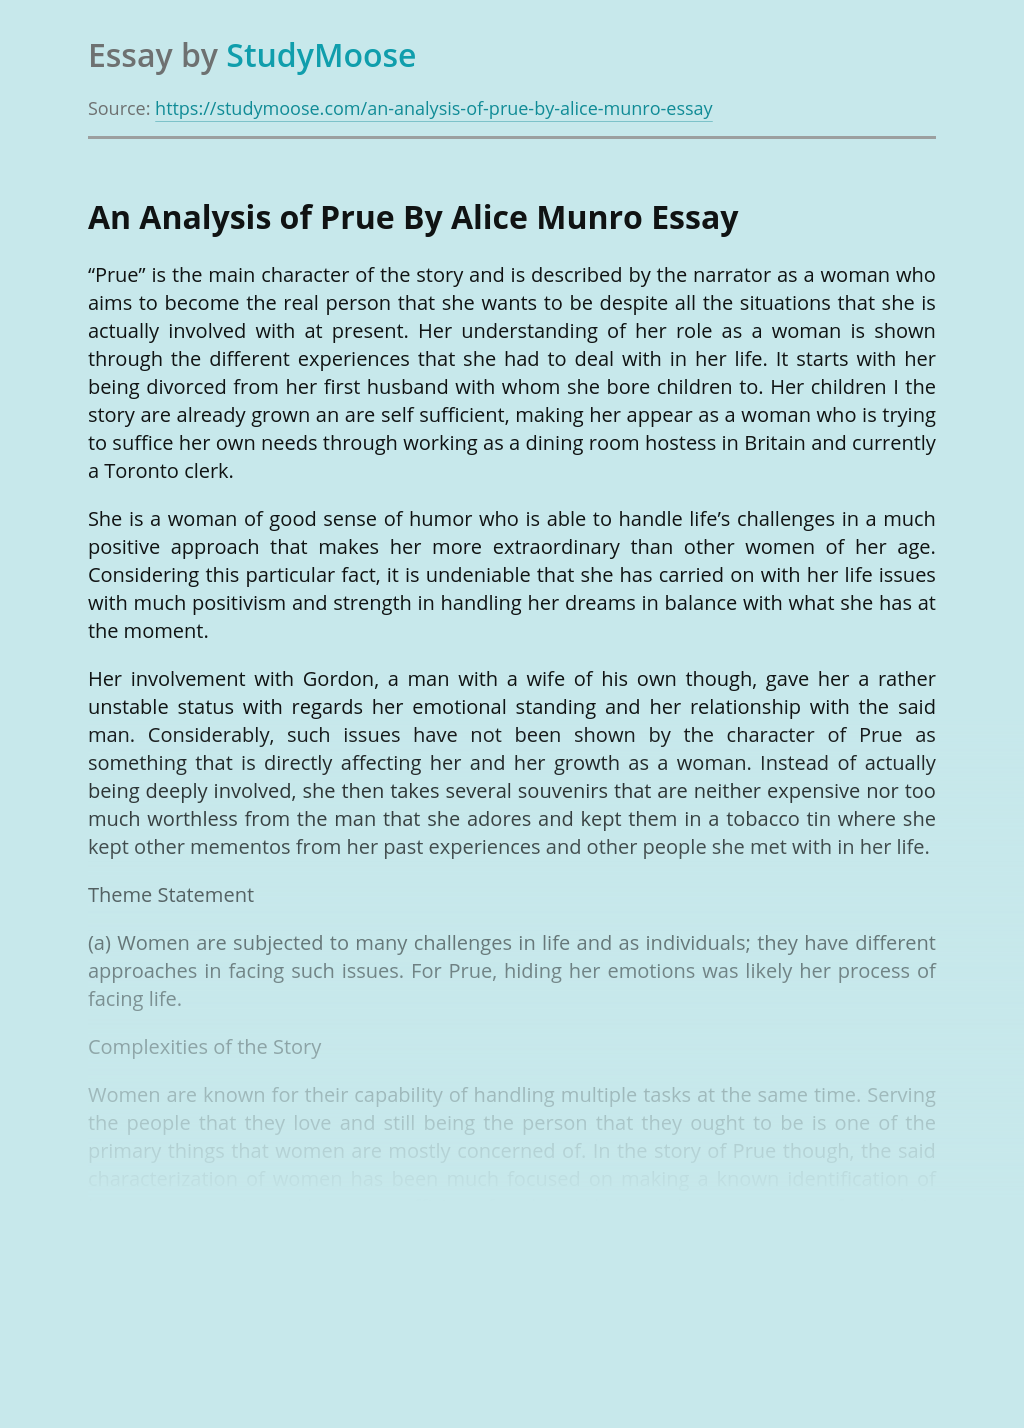 Positive Thinking in Prue By Alice Munro